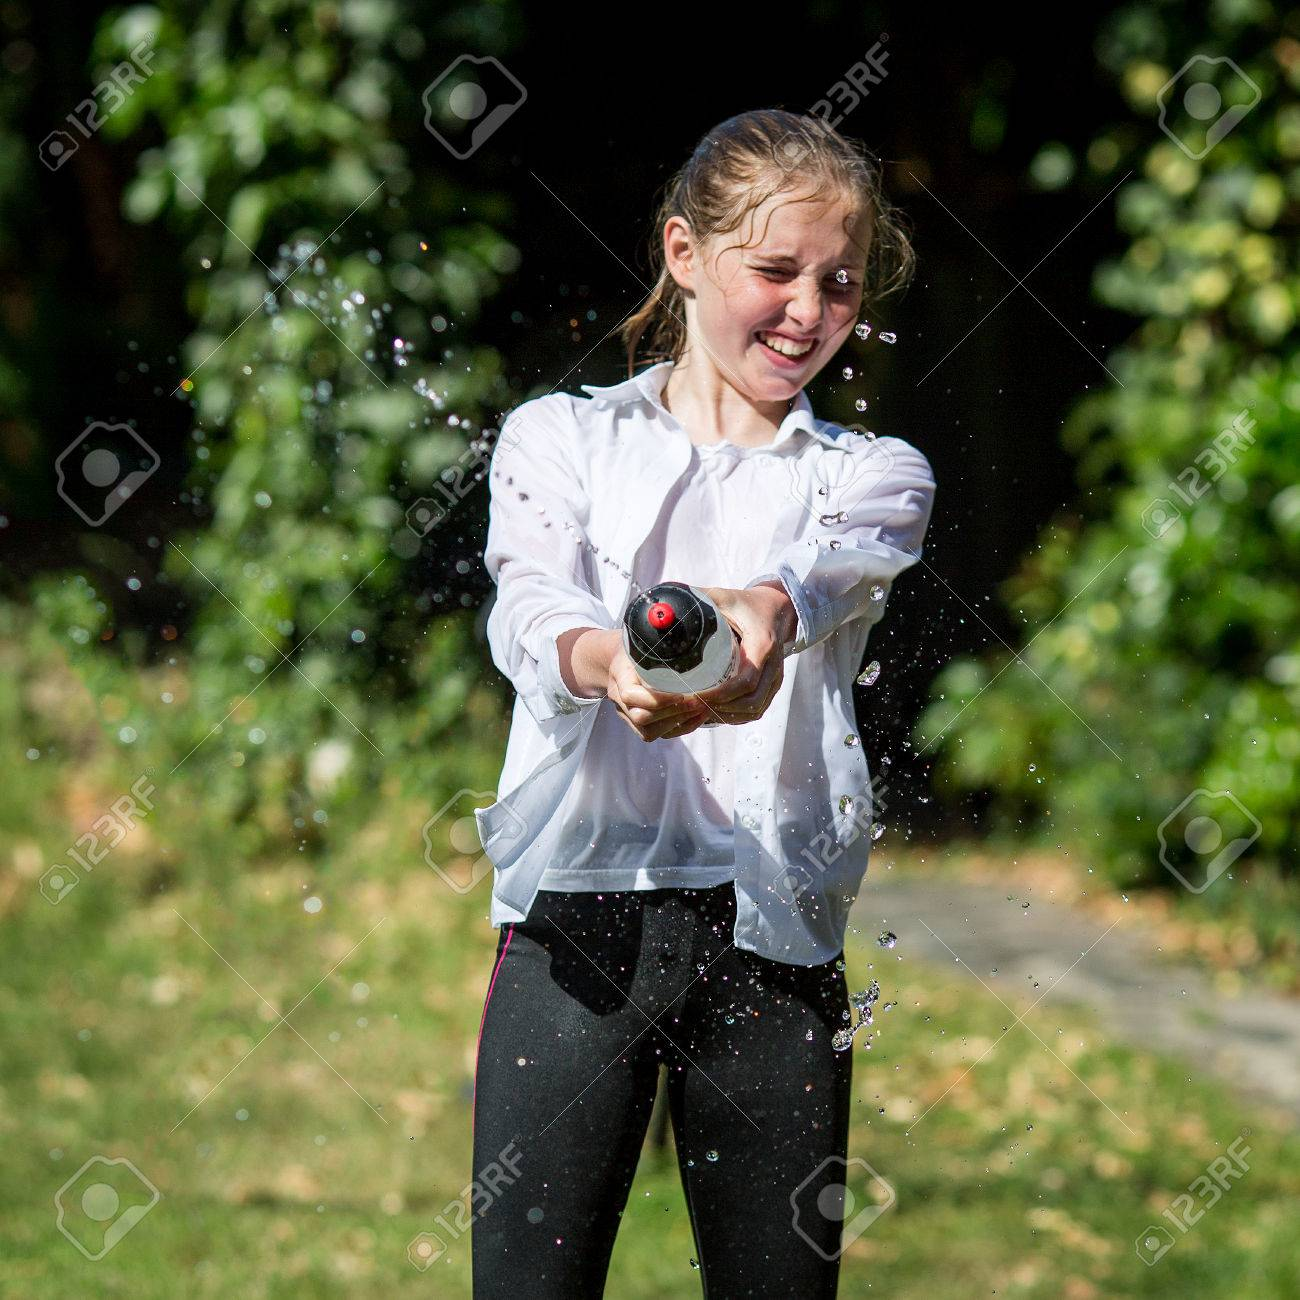 d821bc48cf48e Stock Photo - Wet teenage girl in white shirt and black legging squeezes  water from plastic bottle.